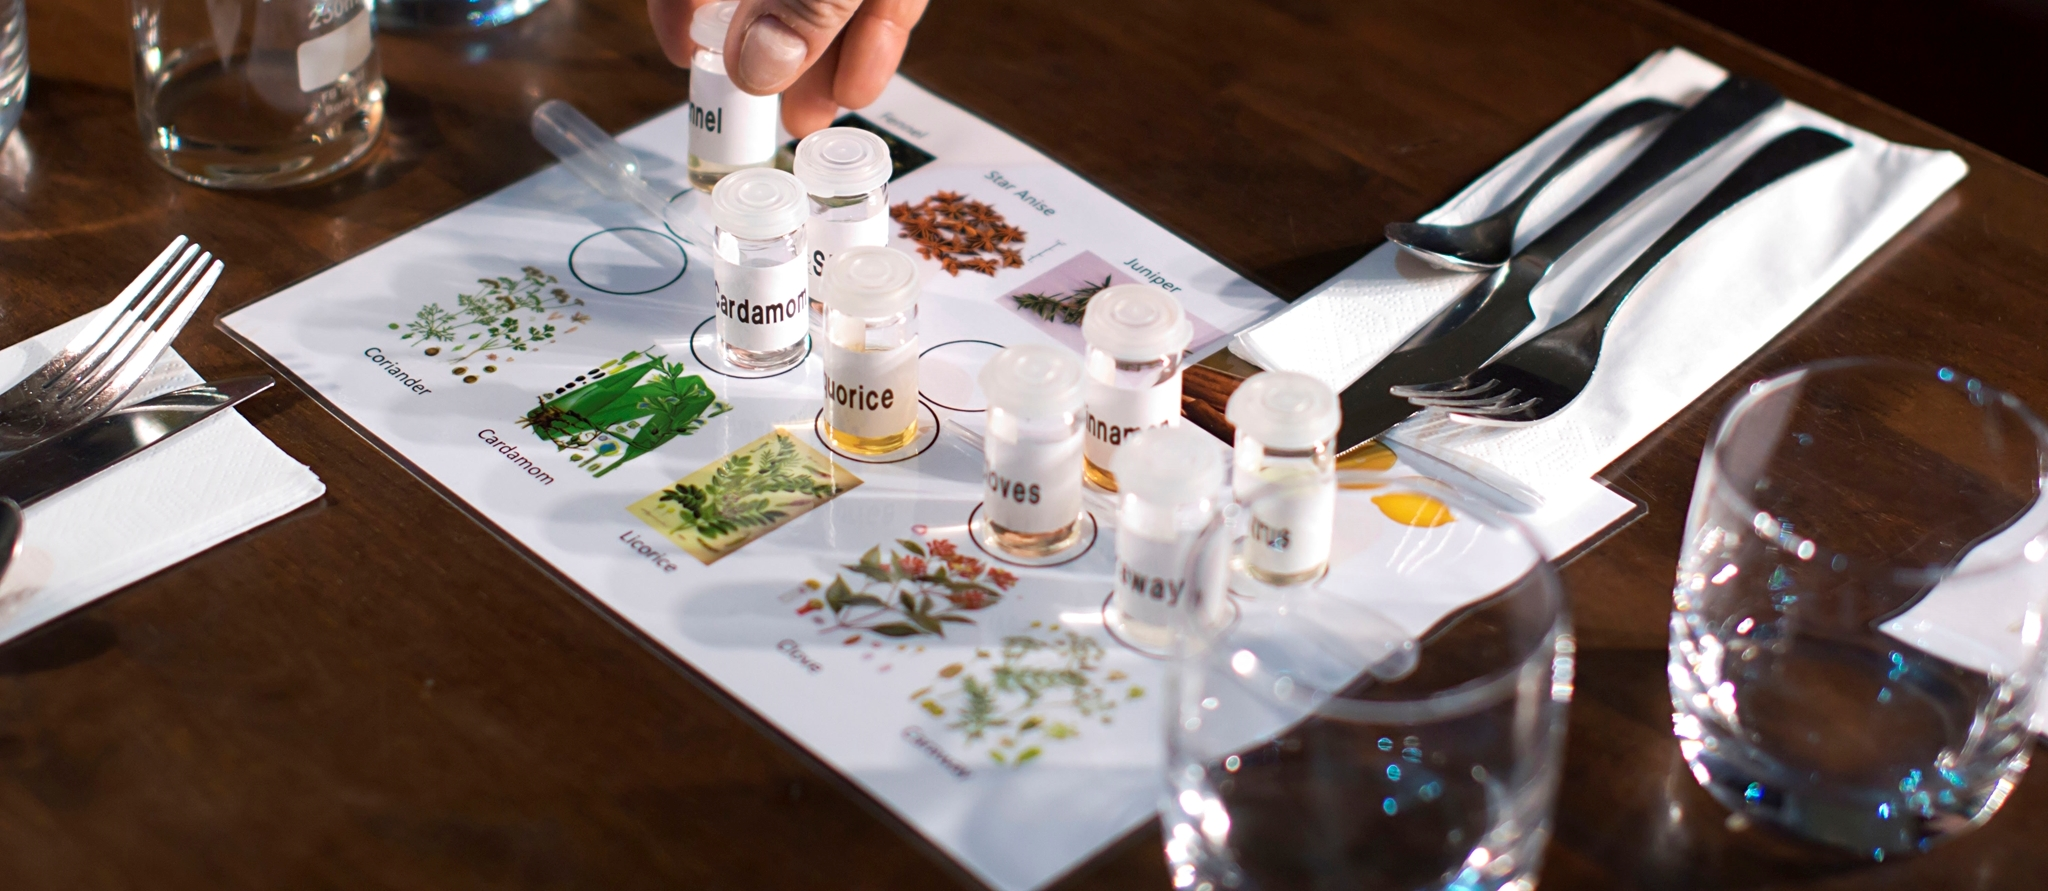 Photograph showing Ginomics botanicals